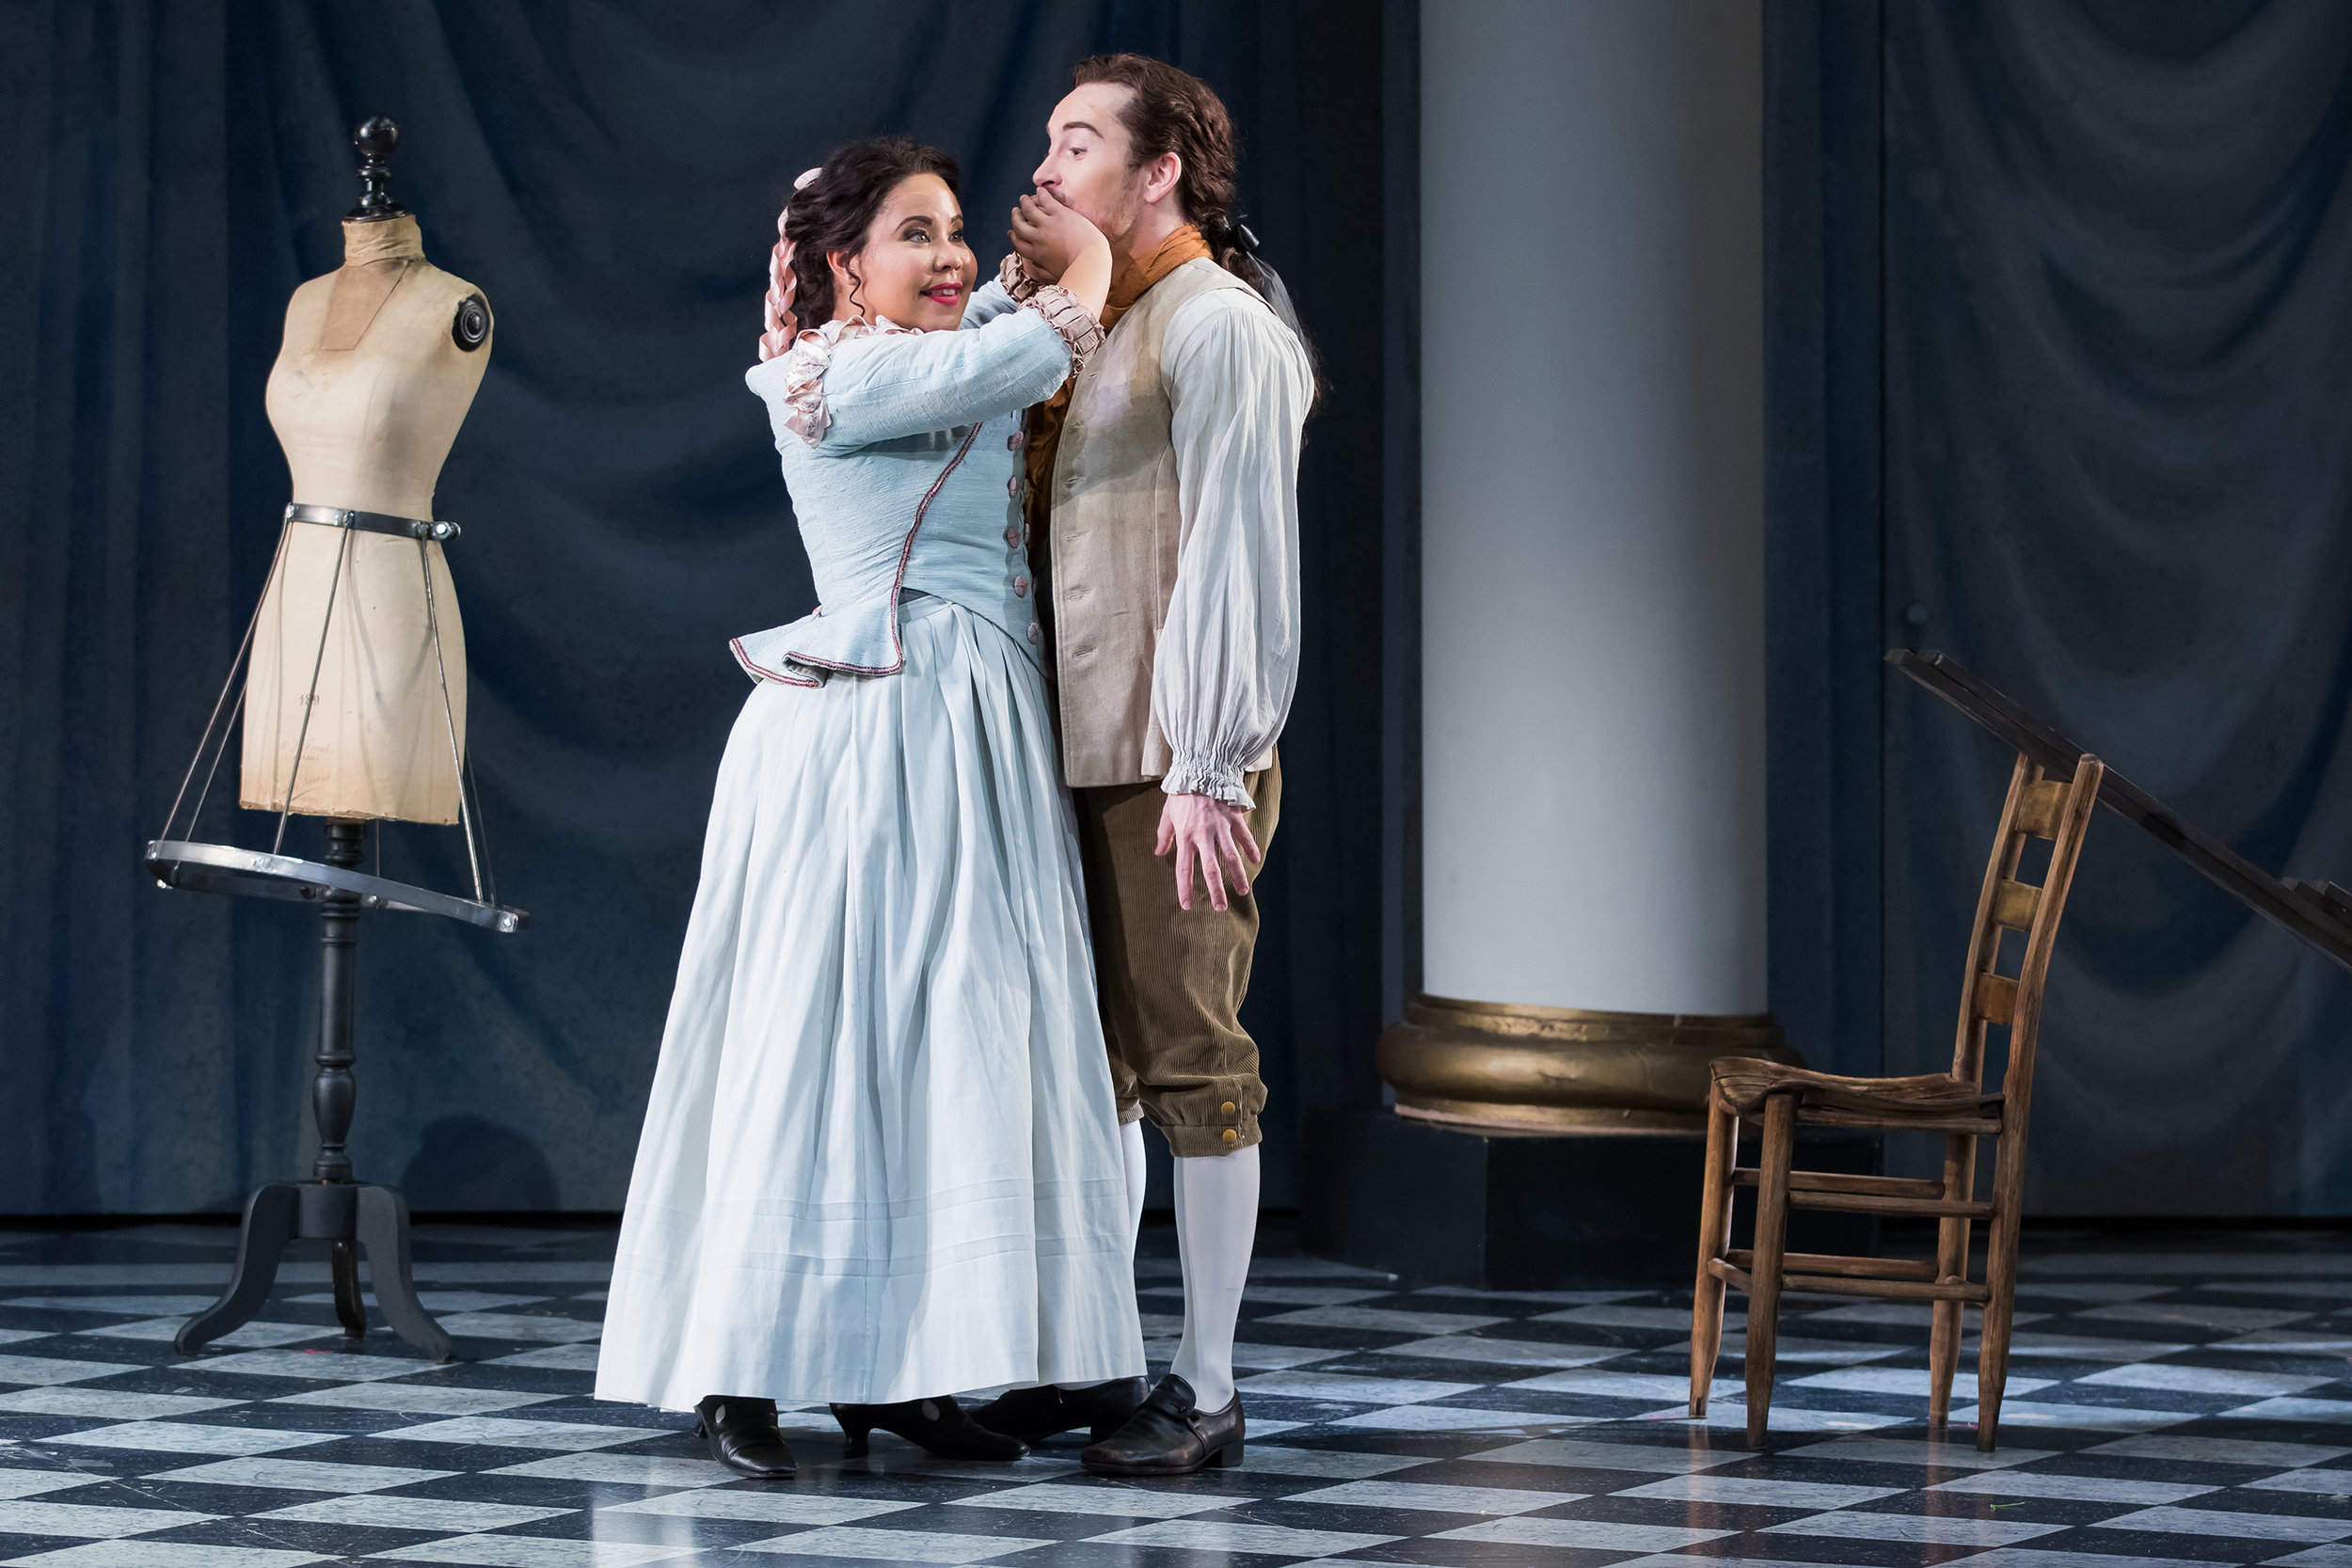 Ariana Wehr (Susanna) with Andrew Bogard (Figaro) in Washington National Opera's 2016 Emerging Artist Performance of Le Nozze di Figaro. Photo Credit: Scott Suchman.